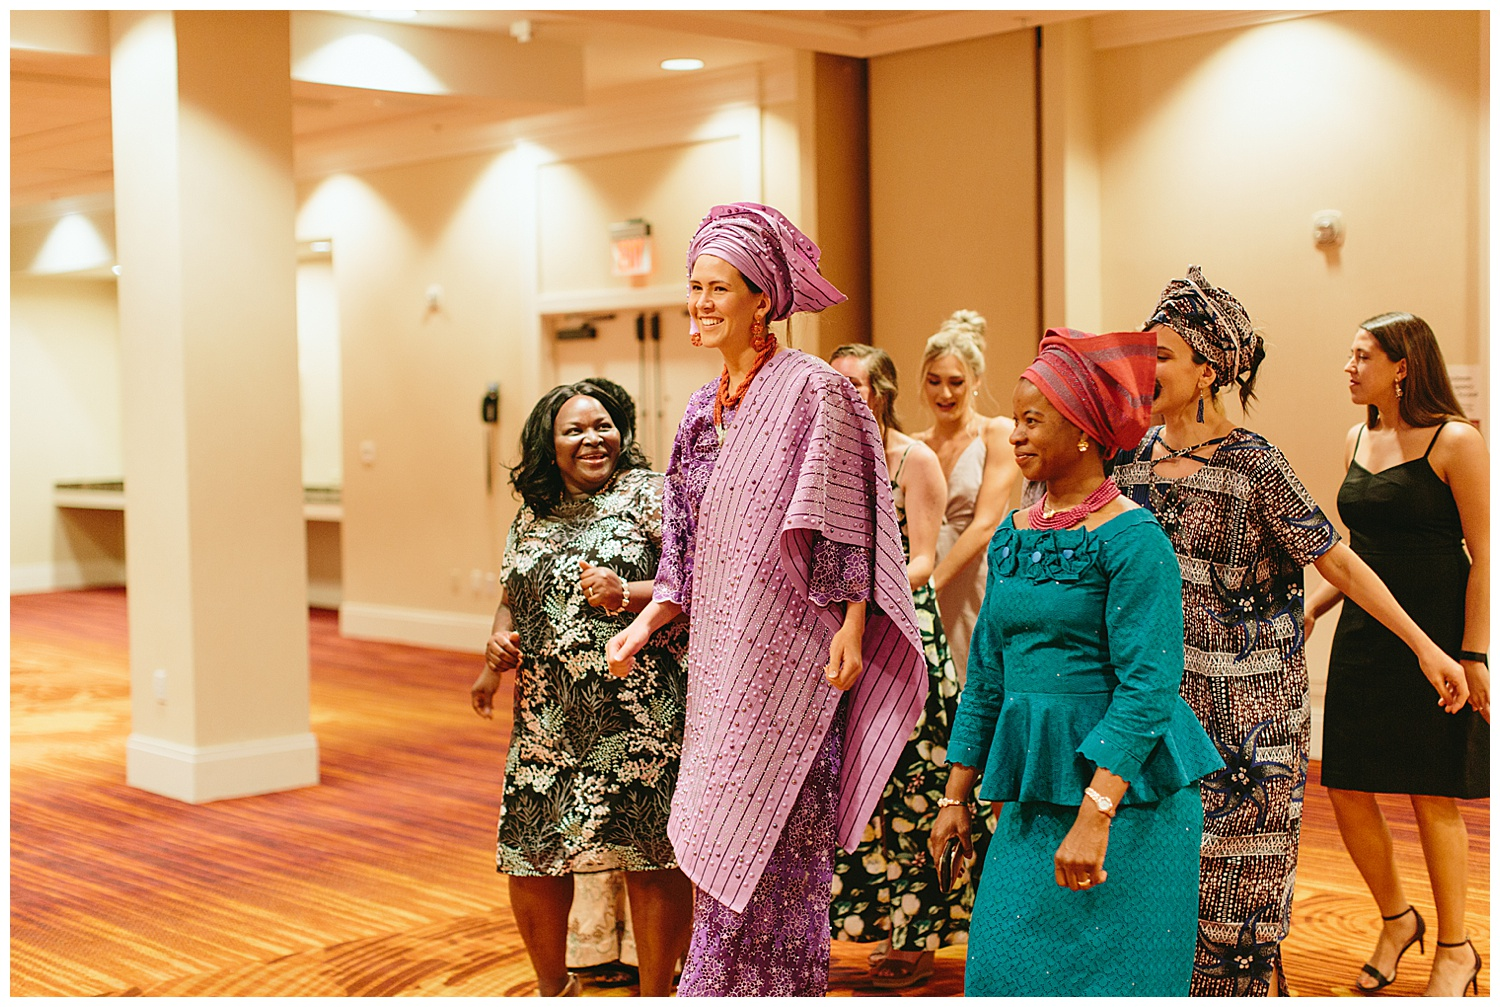 trent.and.kendra.photography.nigerian.wedding.louisville-36.jpg